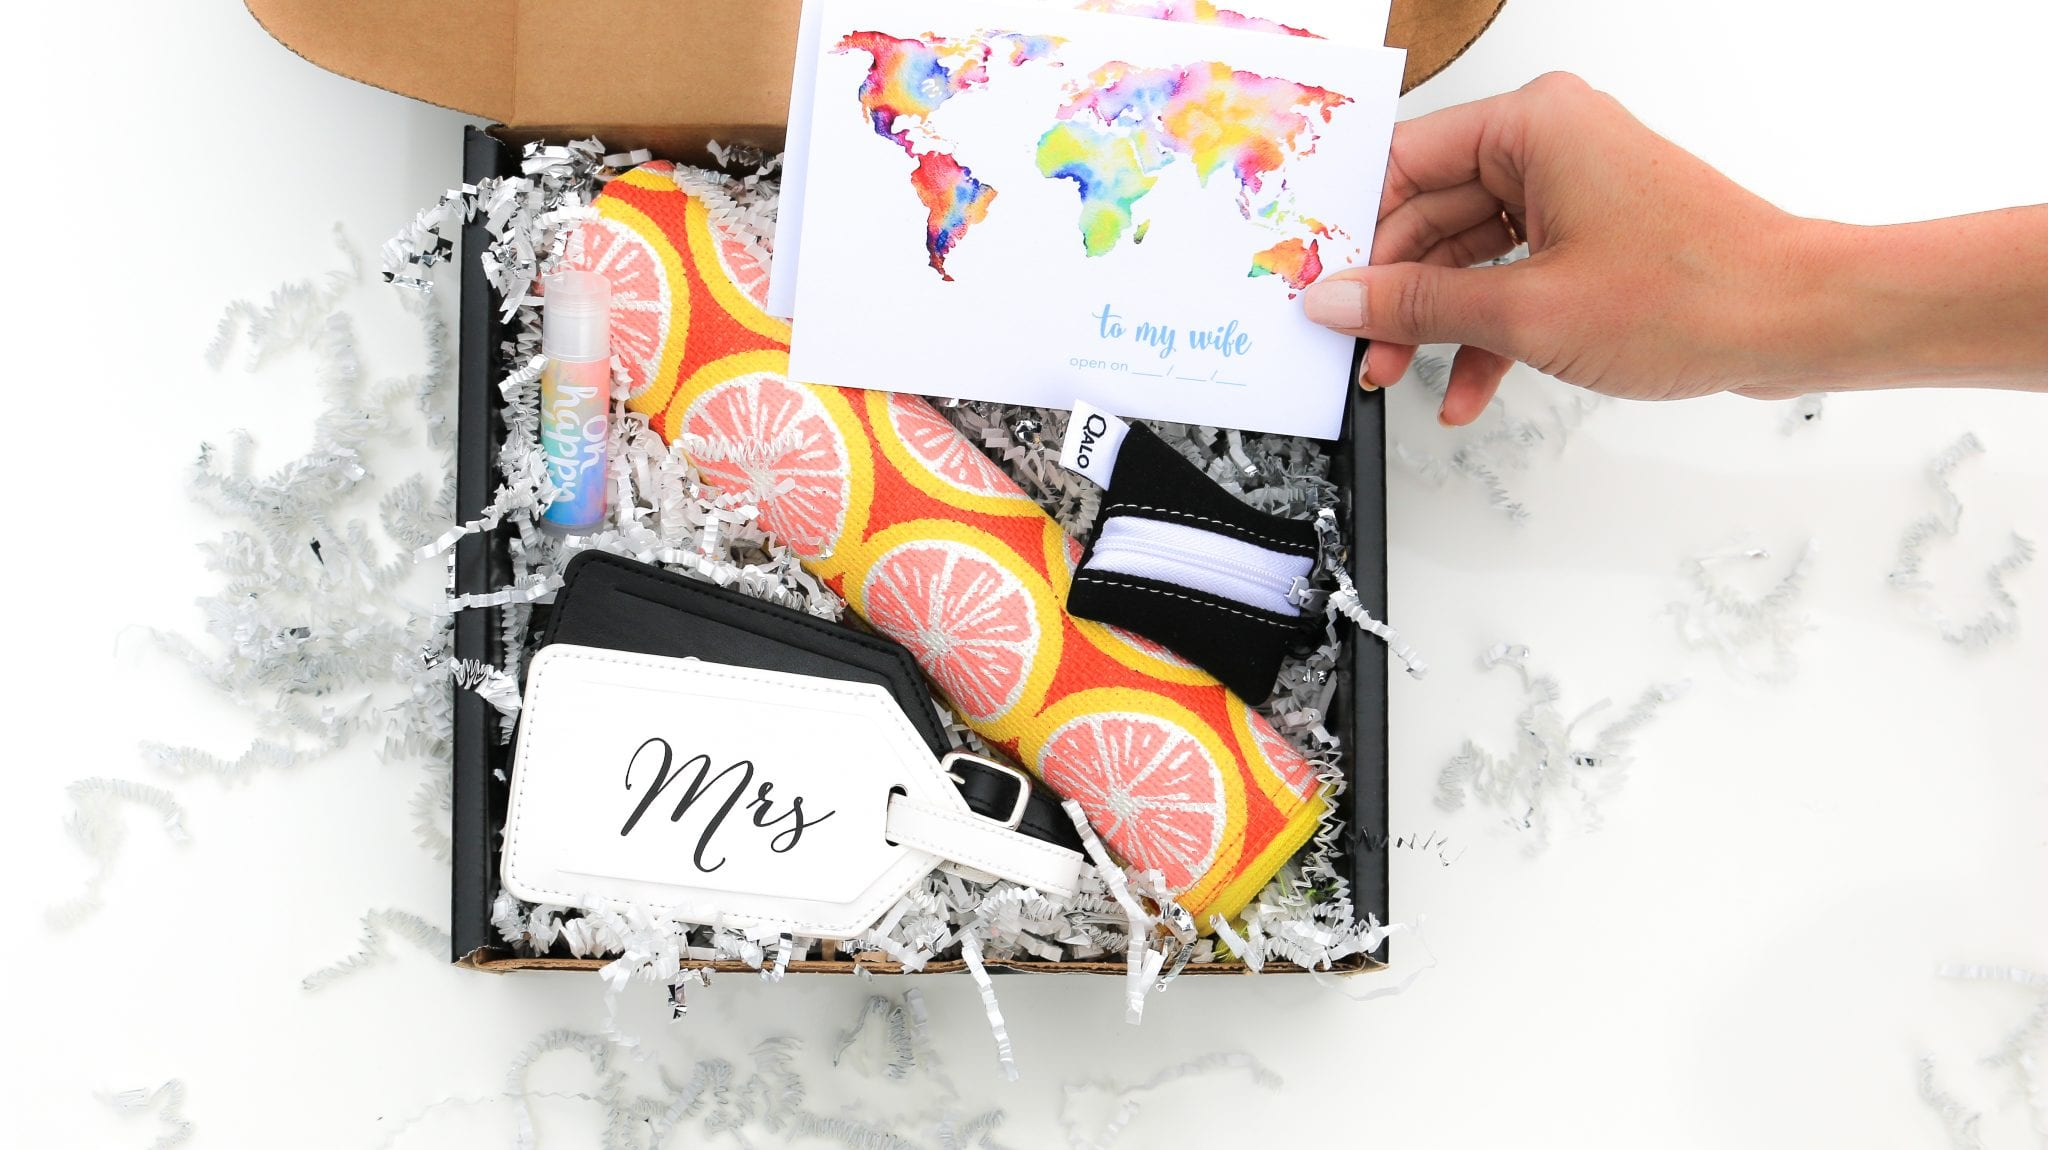 perfect bridal shower gift for couple going on honeymoon